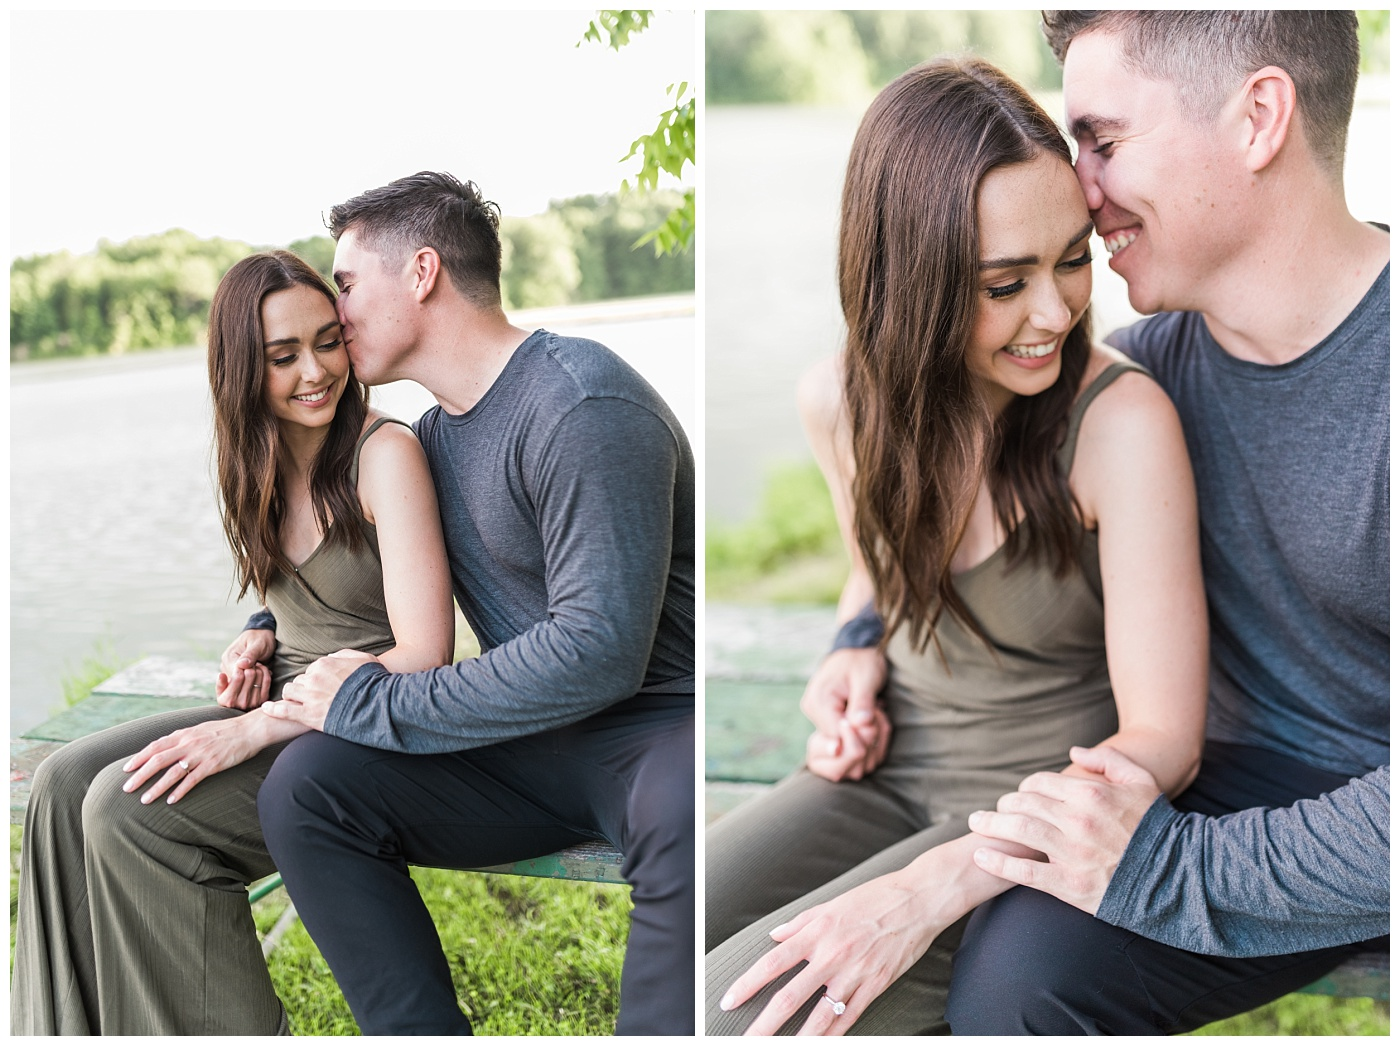 Stephanie Marie Photography Lake McBride Dockside Engagement Session Iowa City Wedding Photographer Madison Sean_0023.jpg